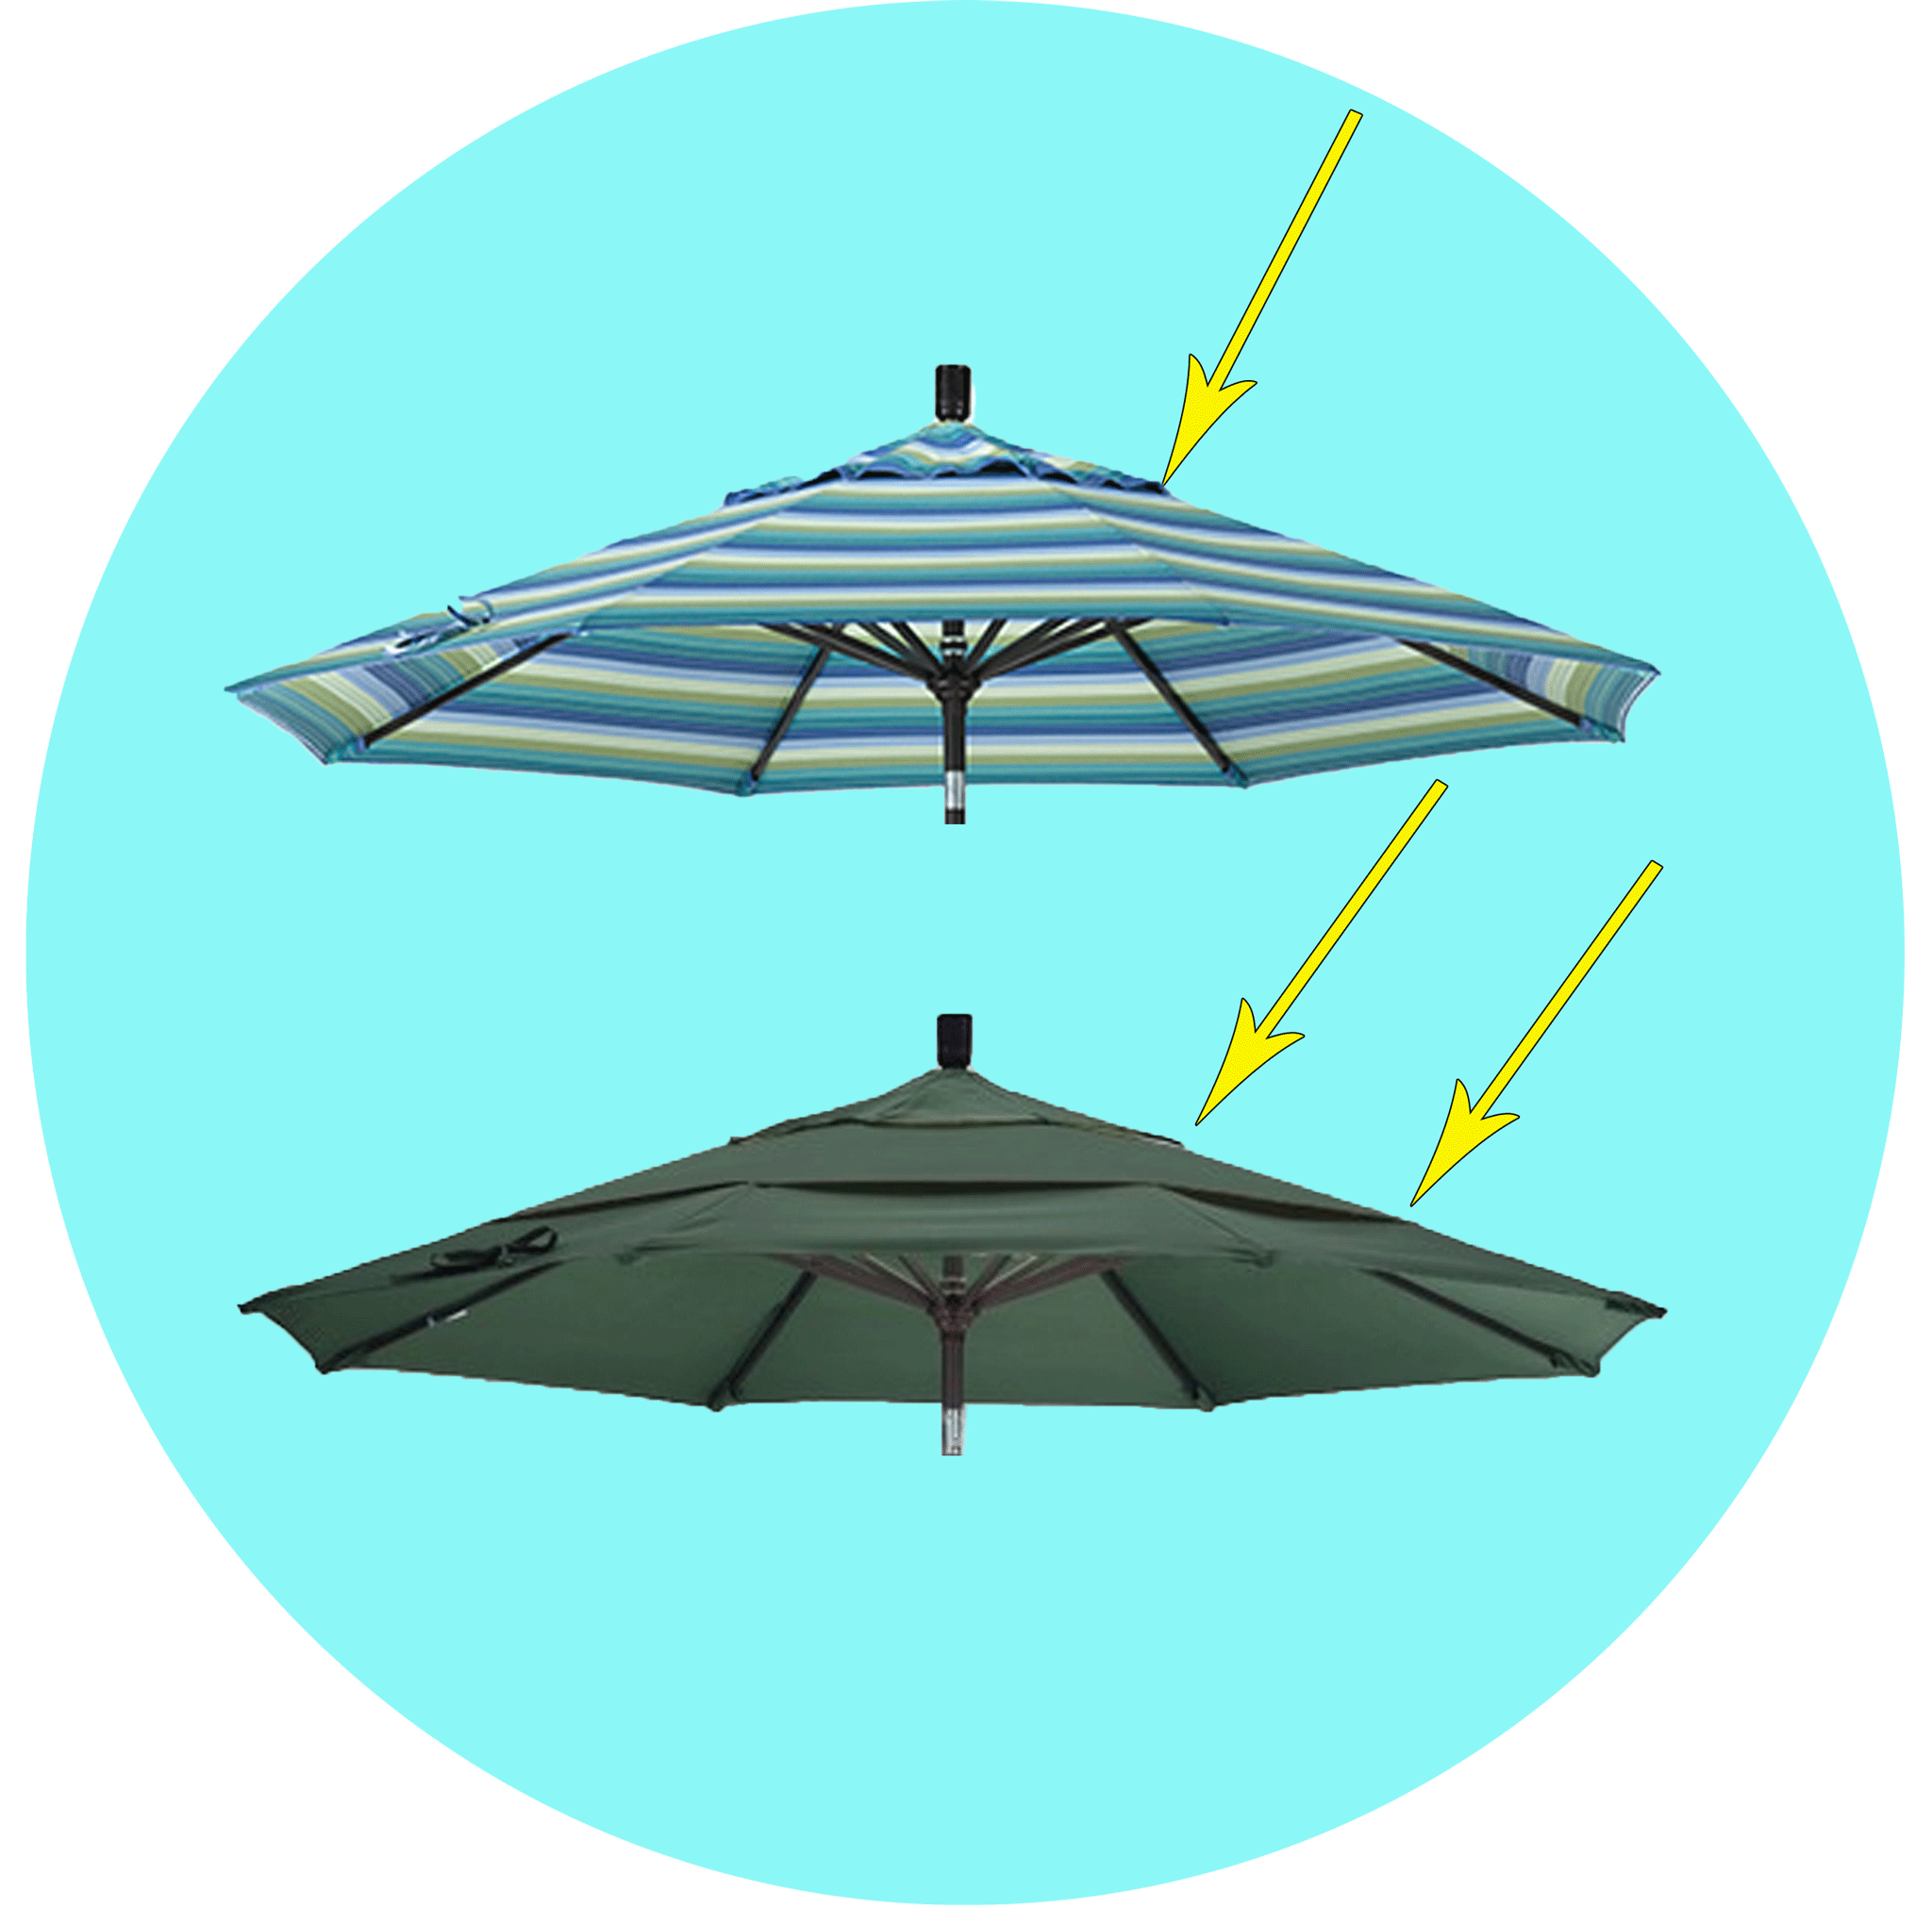 umbrella single ventilation or double ventilation